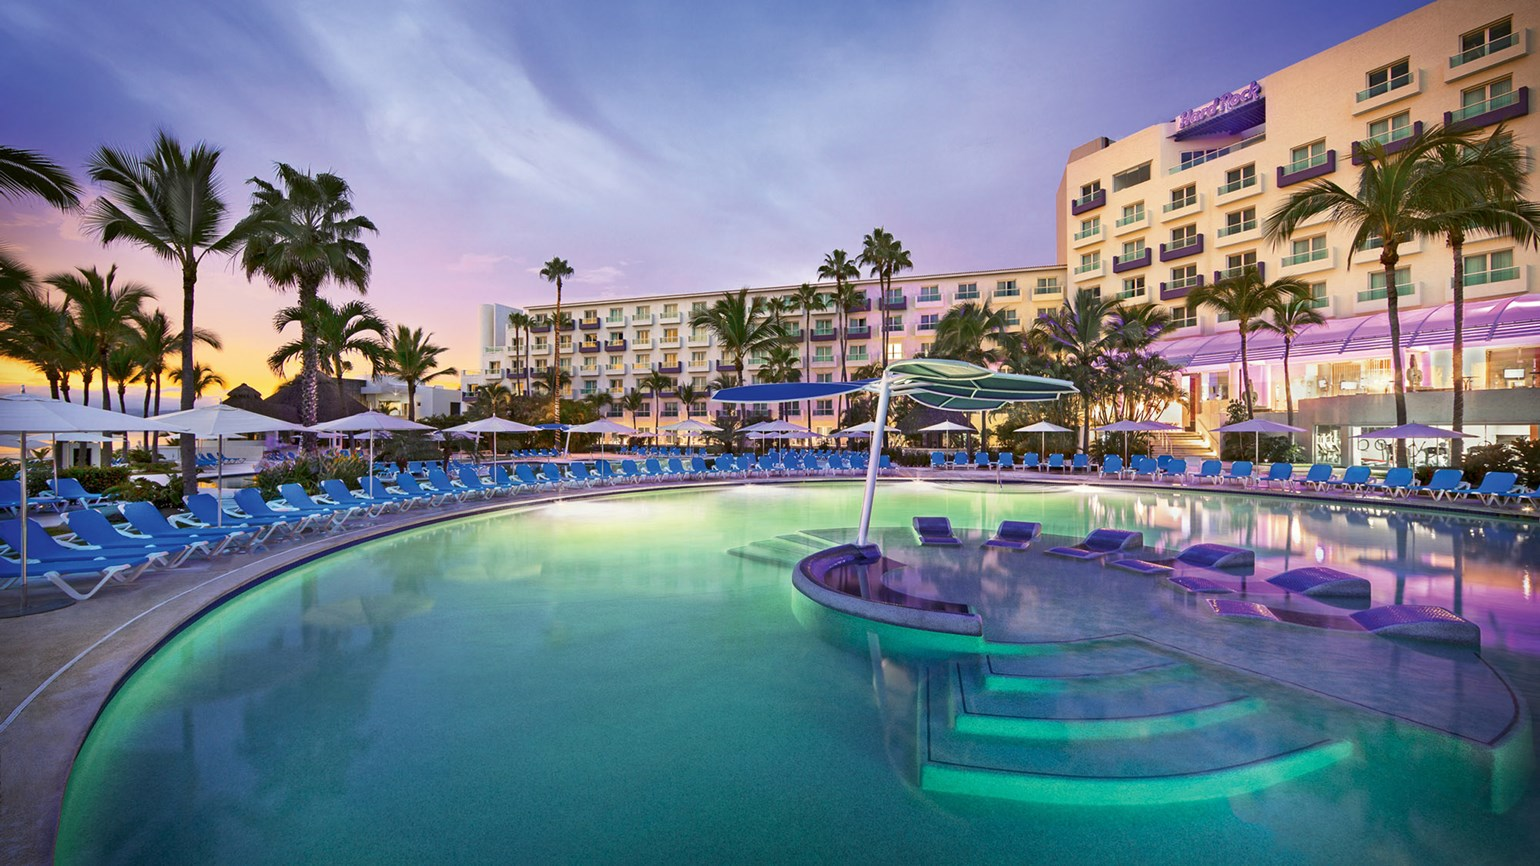 One Of Two Pools At The Hard Rock Hotel Vallarta 348 Room Property Is Located In Nuevo Riviera Nayarit Region